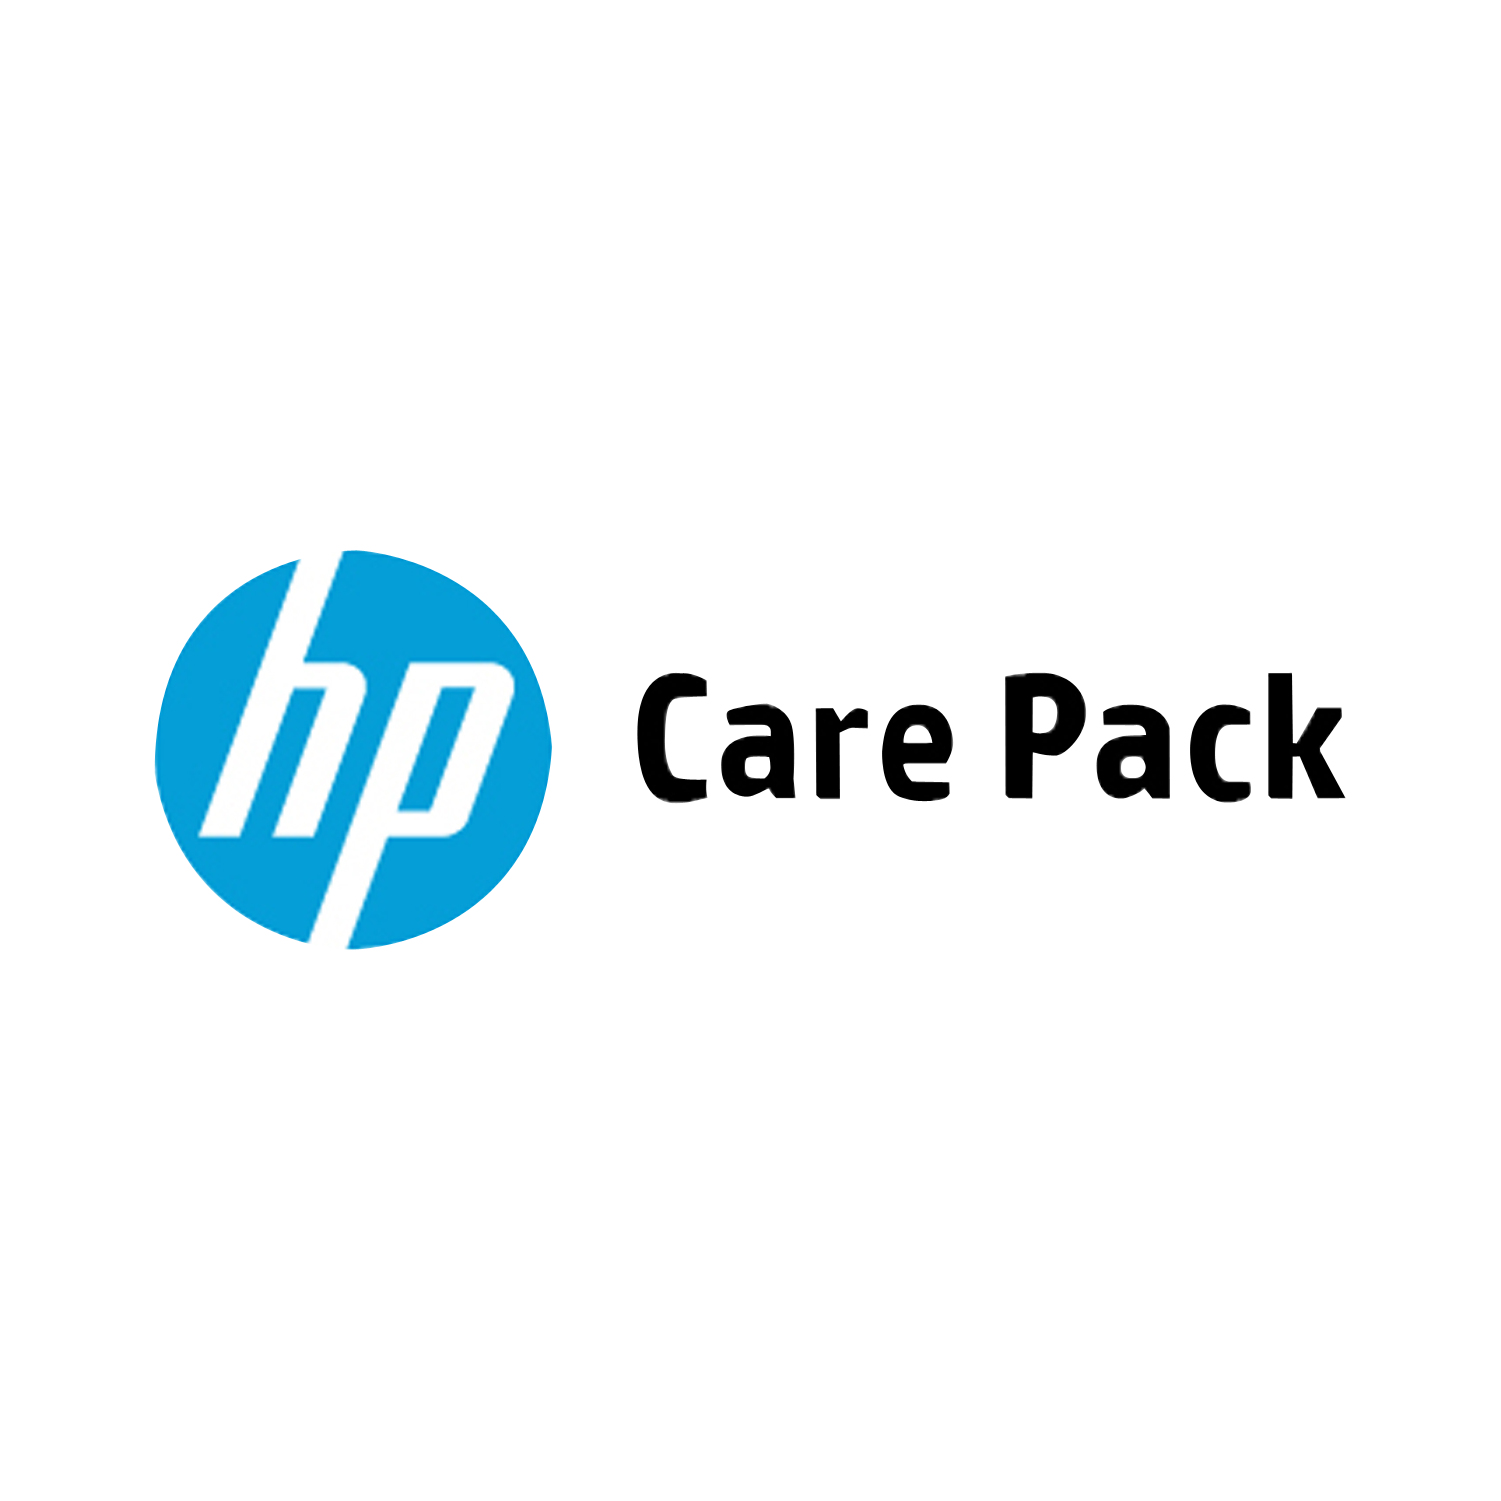 HP Carepack 1y PW NextBusDay Exchange TC Only SVC Thin Client T Series 3/0/0 Wty Excl Mon 1y Post Wrrnty Exchange SVC,HW Only,HP Ships Replacement Next Bus D, Std Bus  H,d Excl HP Hol. HP Pre - C2000